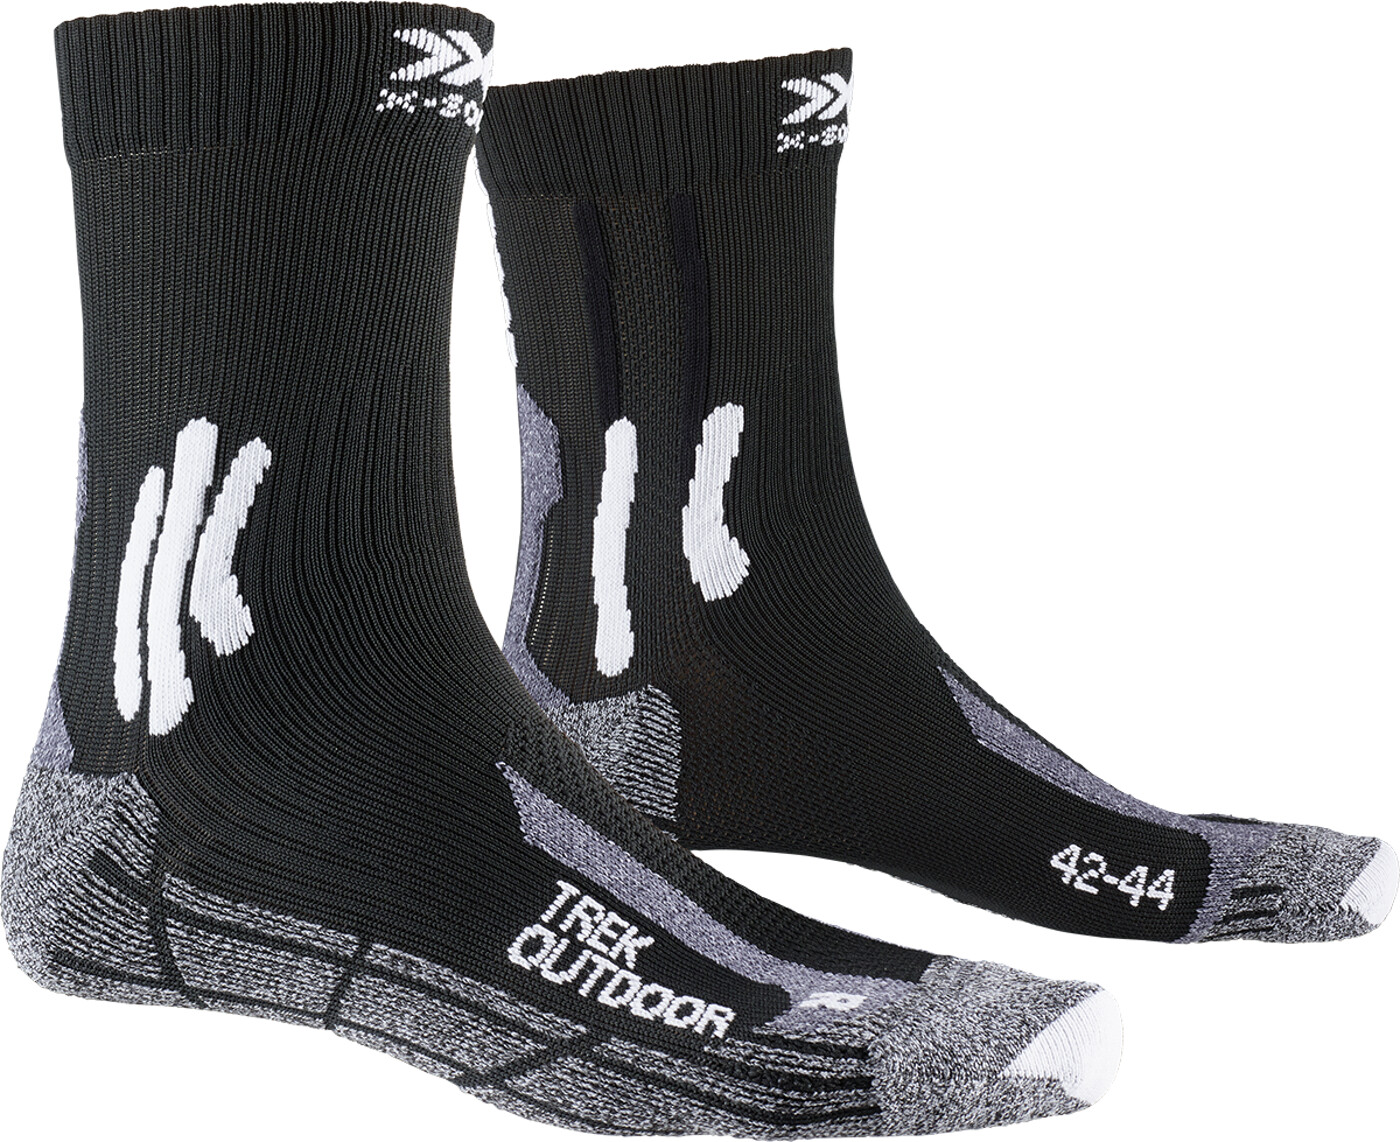 X-BIONIC TREK OUTDOOR Socken - Herren